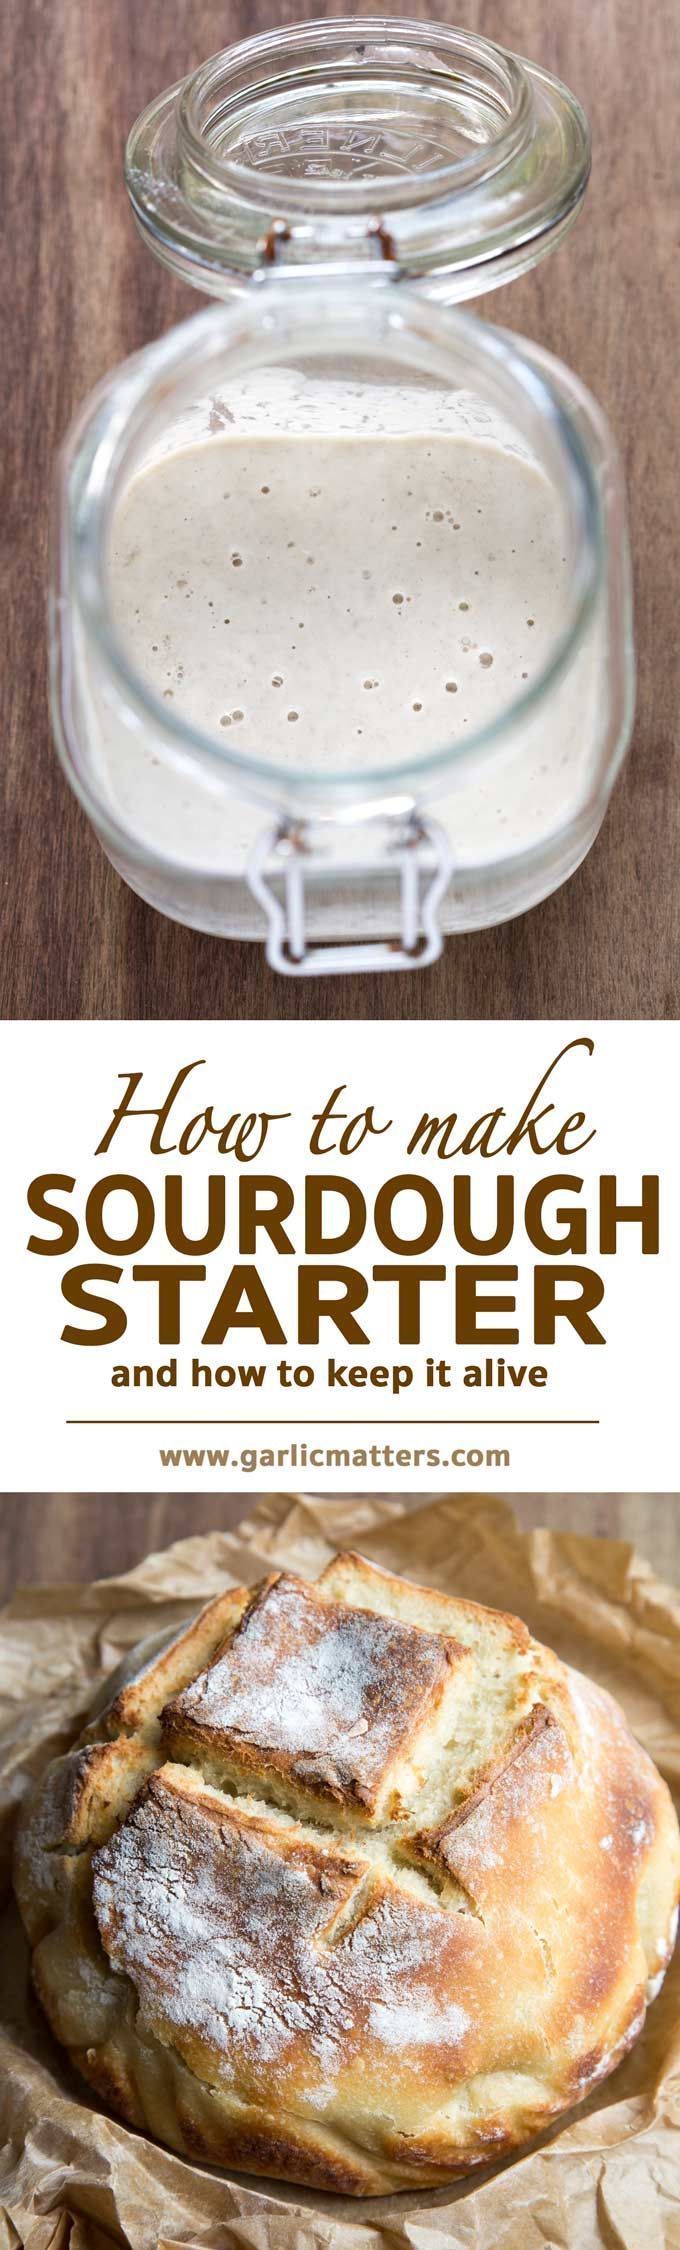 Learn how to make best sourdough starter with wild yeast for the most delicious sourdough bread. Step by step instructions with pictures, problem solving and full guidance. It is easier than you think! PERXFOOD.COM